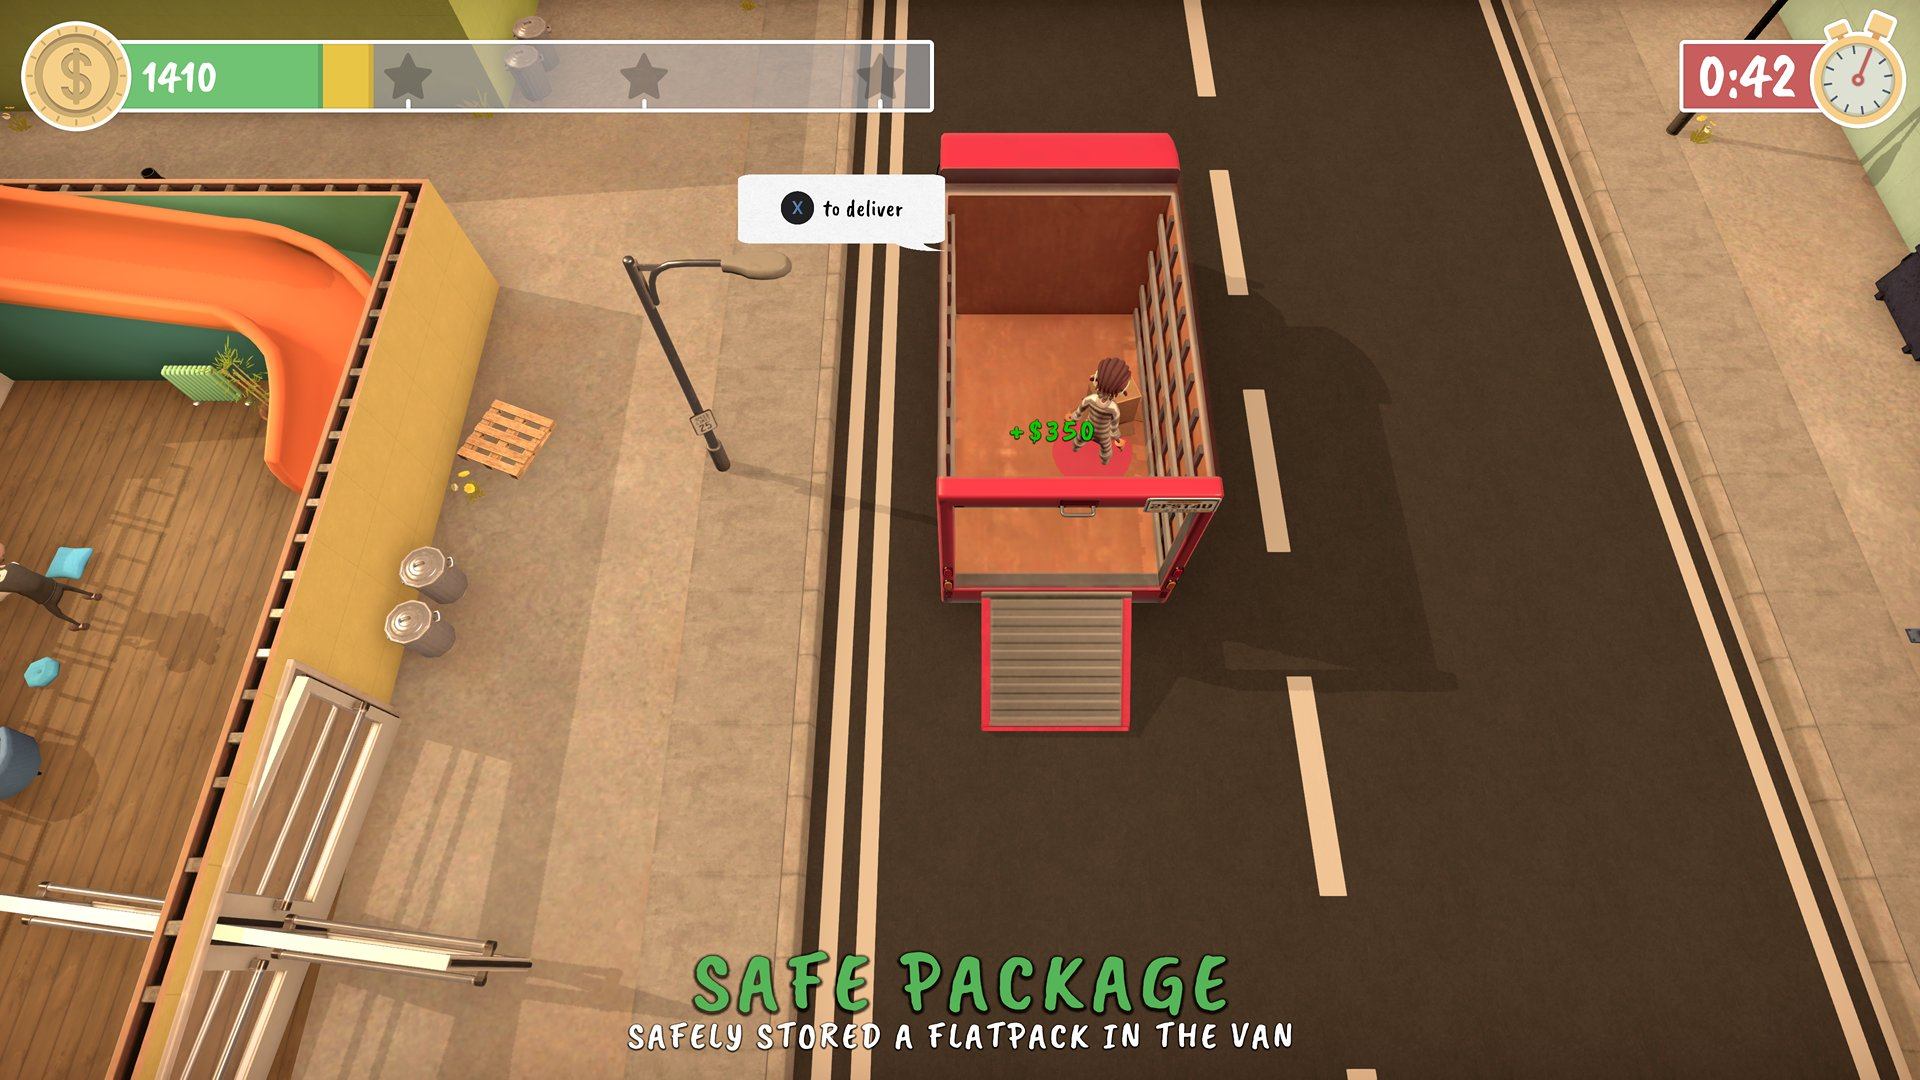 A screenshot from Get Packed, a message is congratulating you for safely flat-packing an item in the removal van.